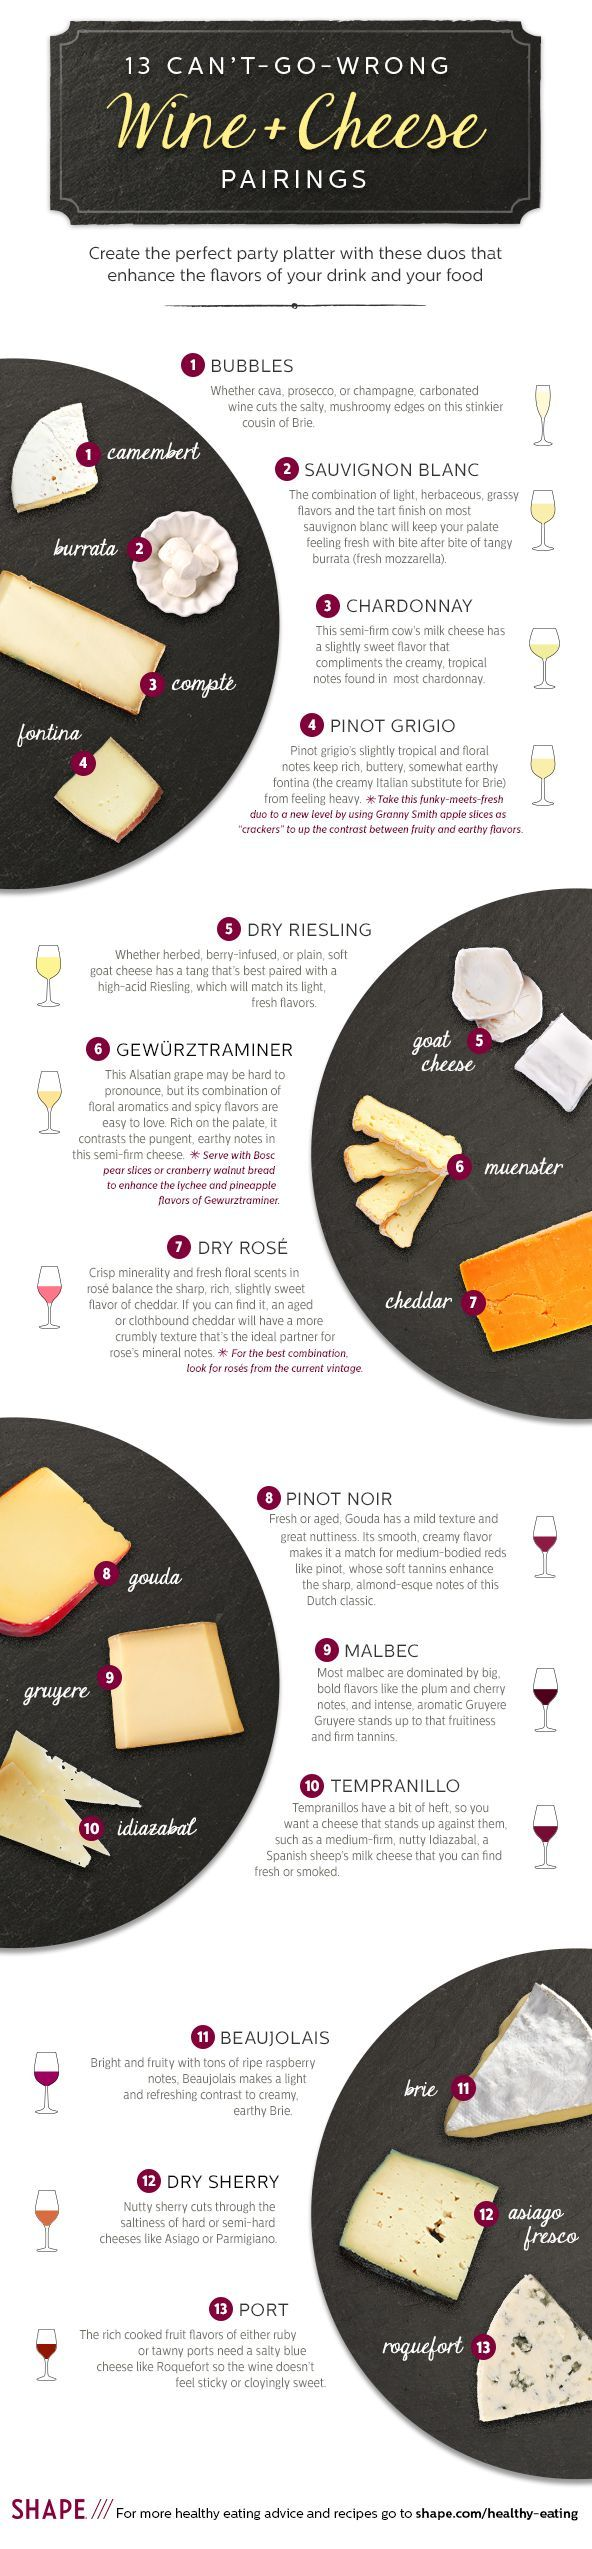 Wine and Cheese pairings for any holiday party!